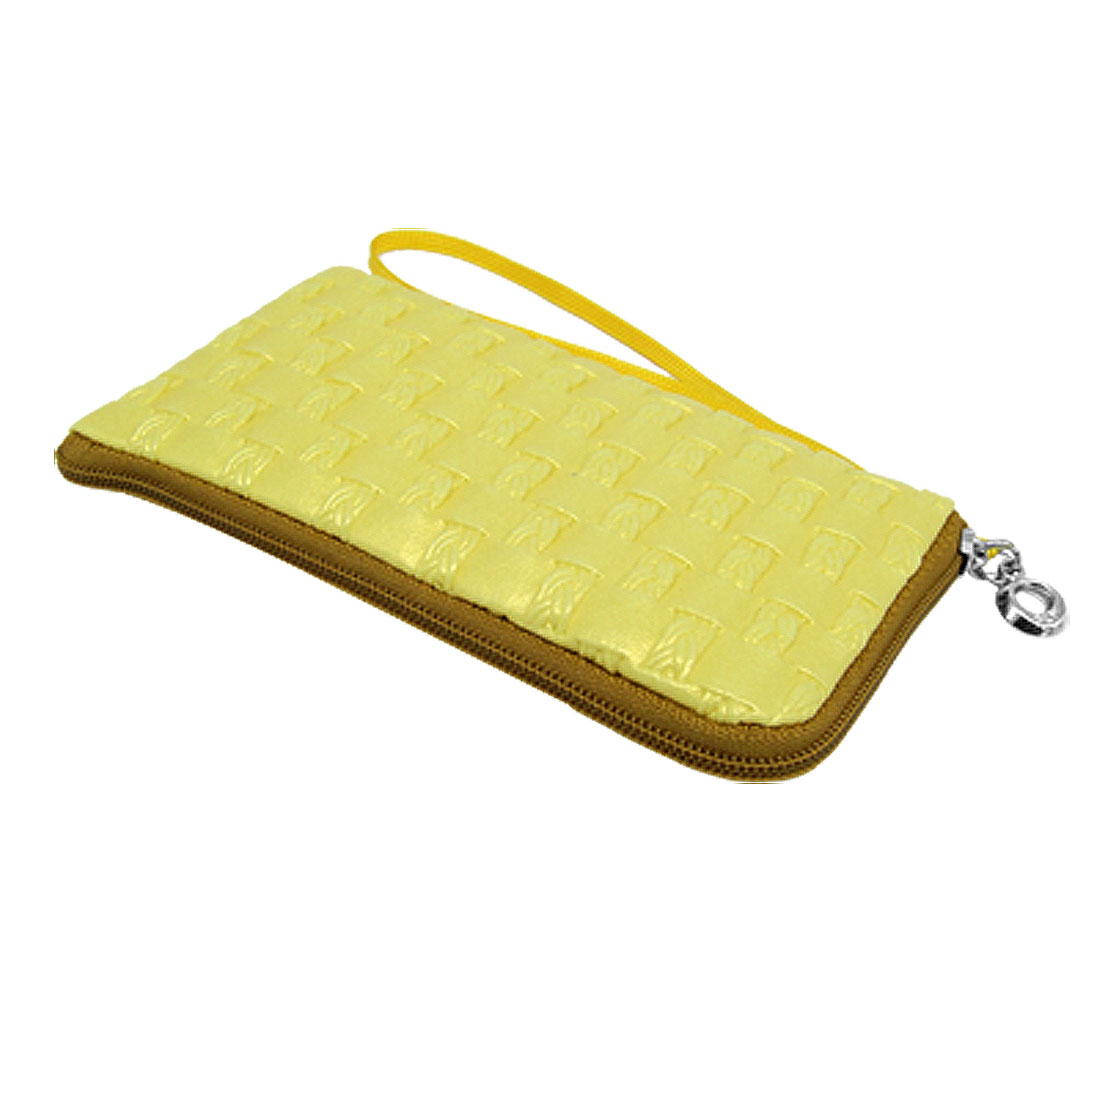 Yellow Purse Holder Bag with Hand Strap for Cell Phone